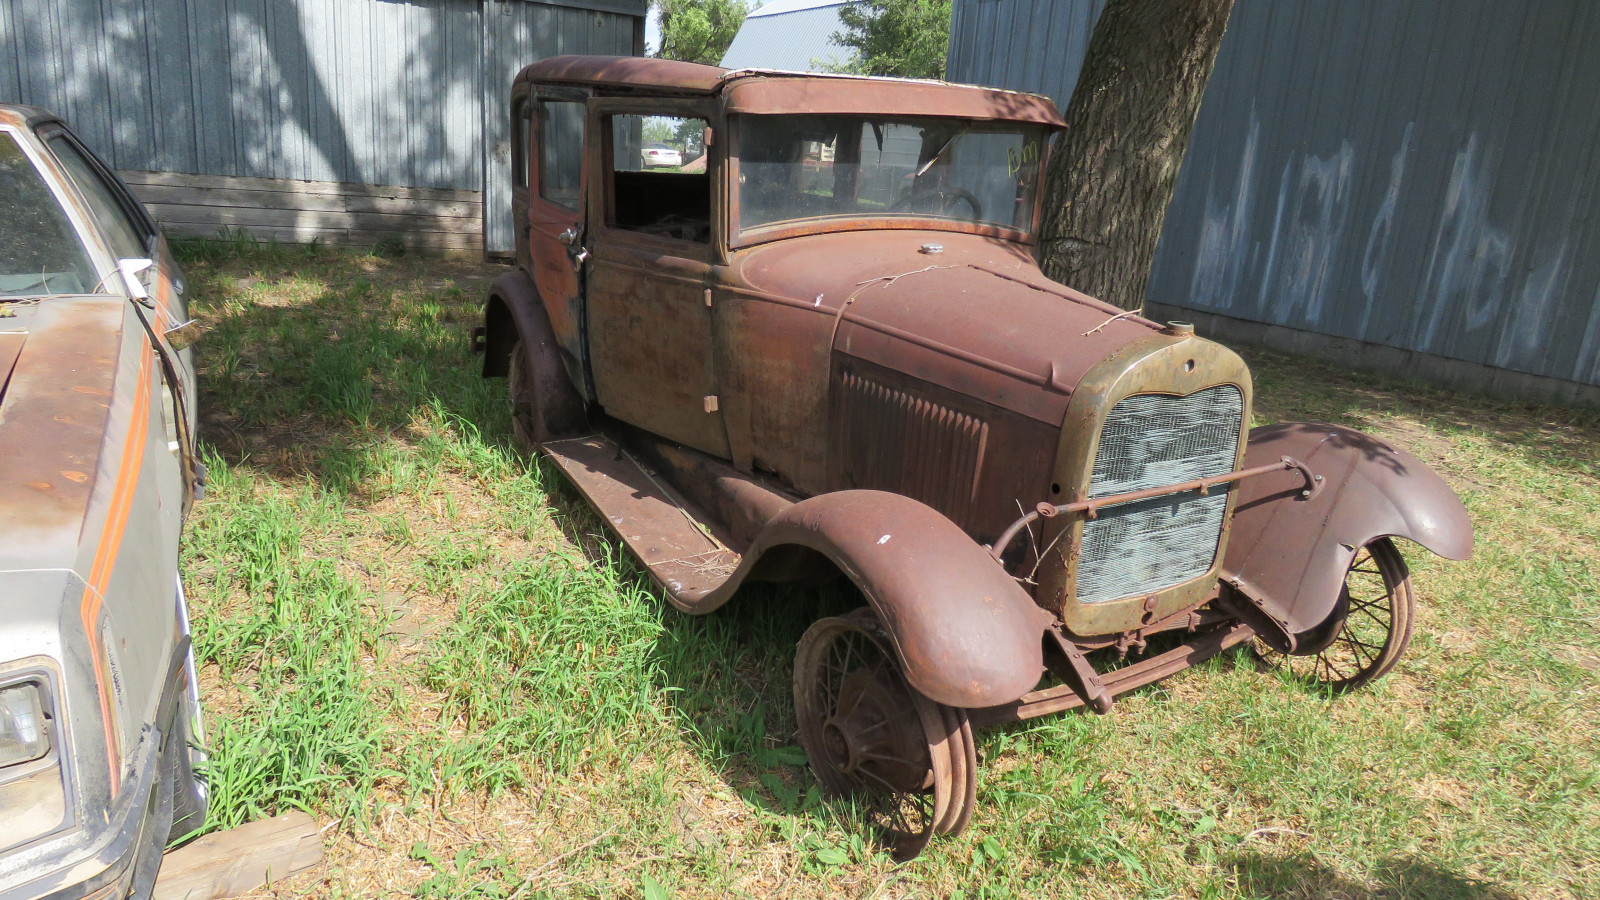 1928 Ford Model A 4dr Sedan for Rod or Restore - Image 3